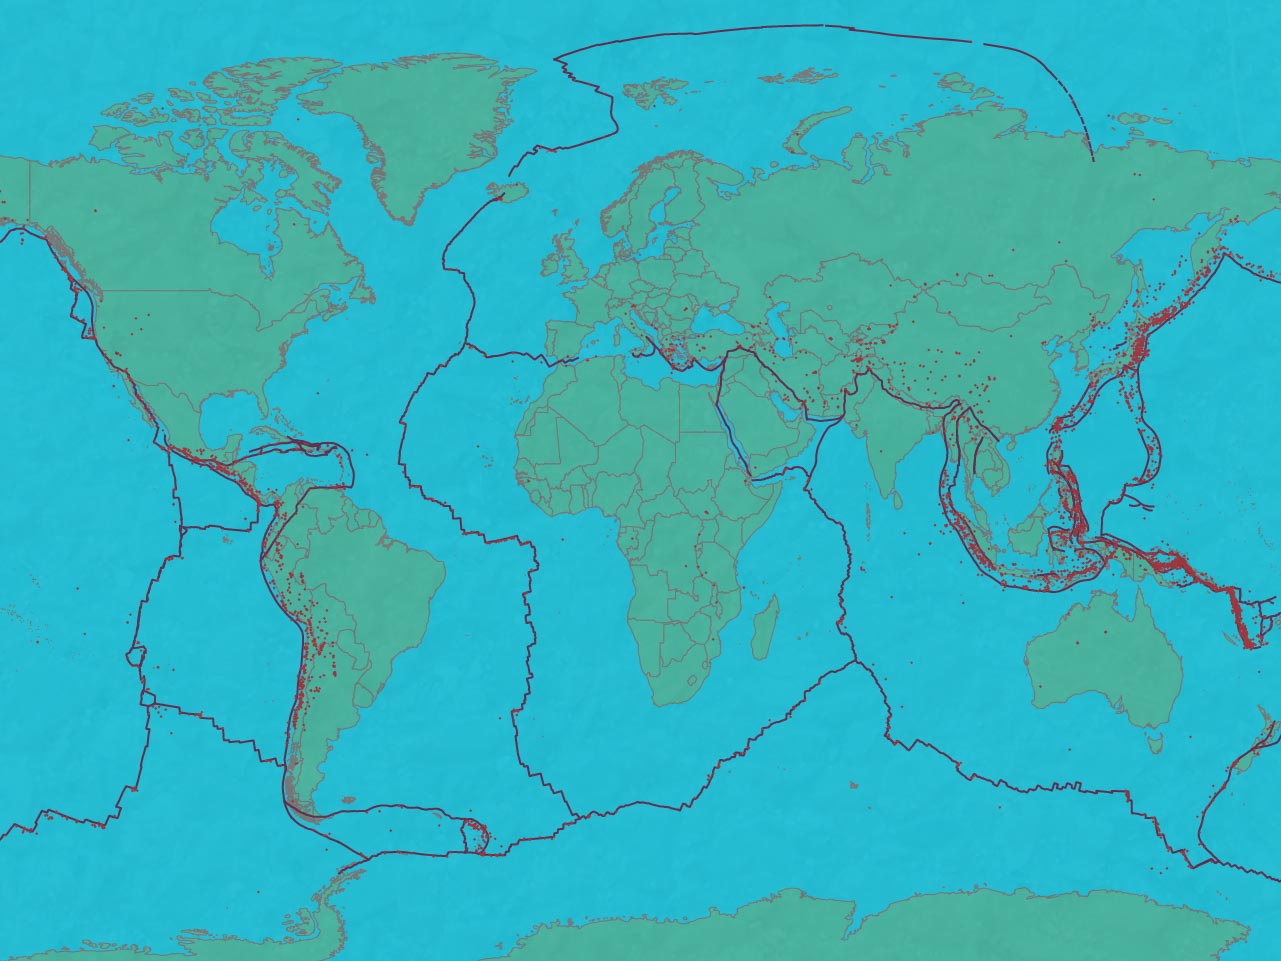 Earthquake and plate tectonics map